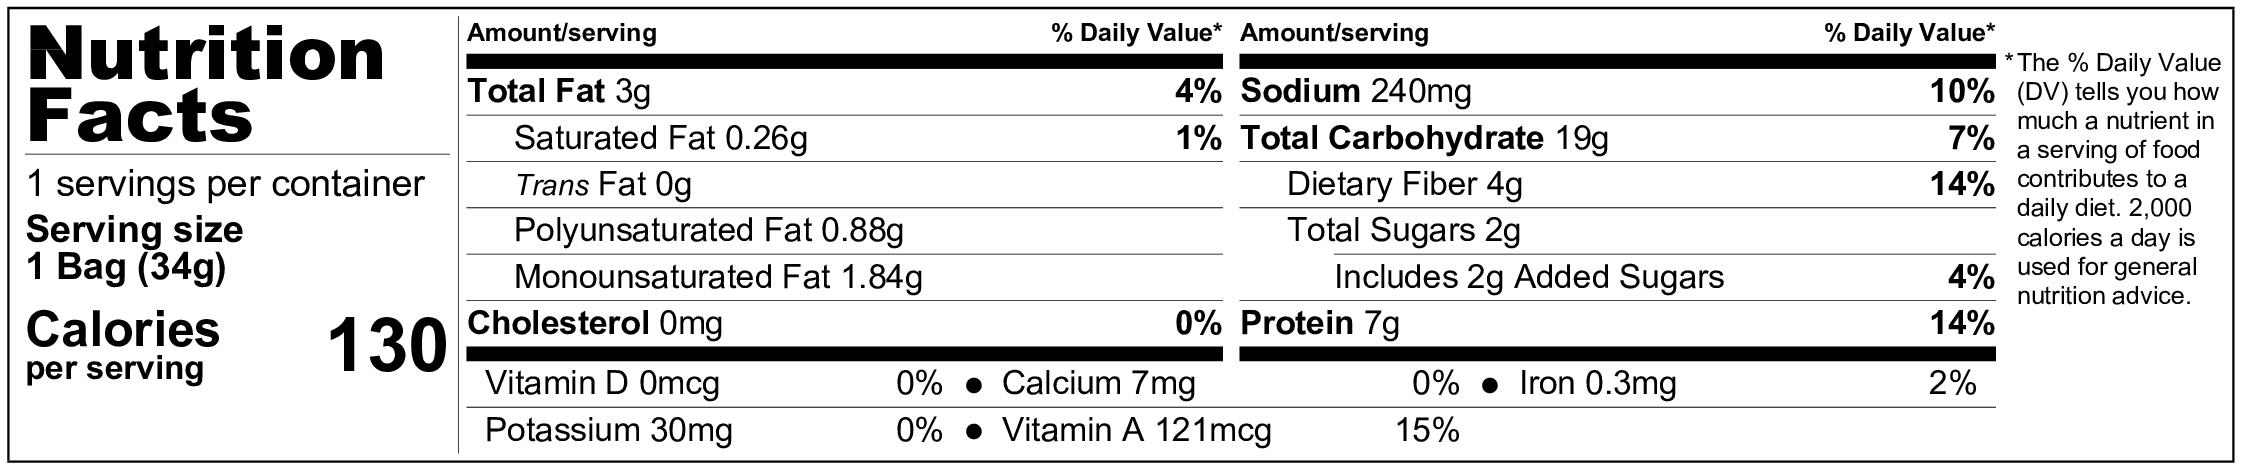 Nutrition facts PLANETARIANS Sunflower Chips Fiery Sriracha Horizontal.png